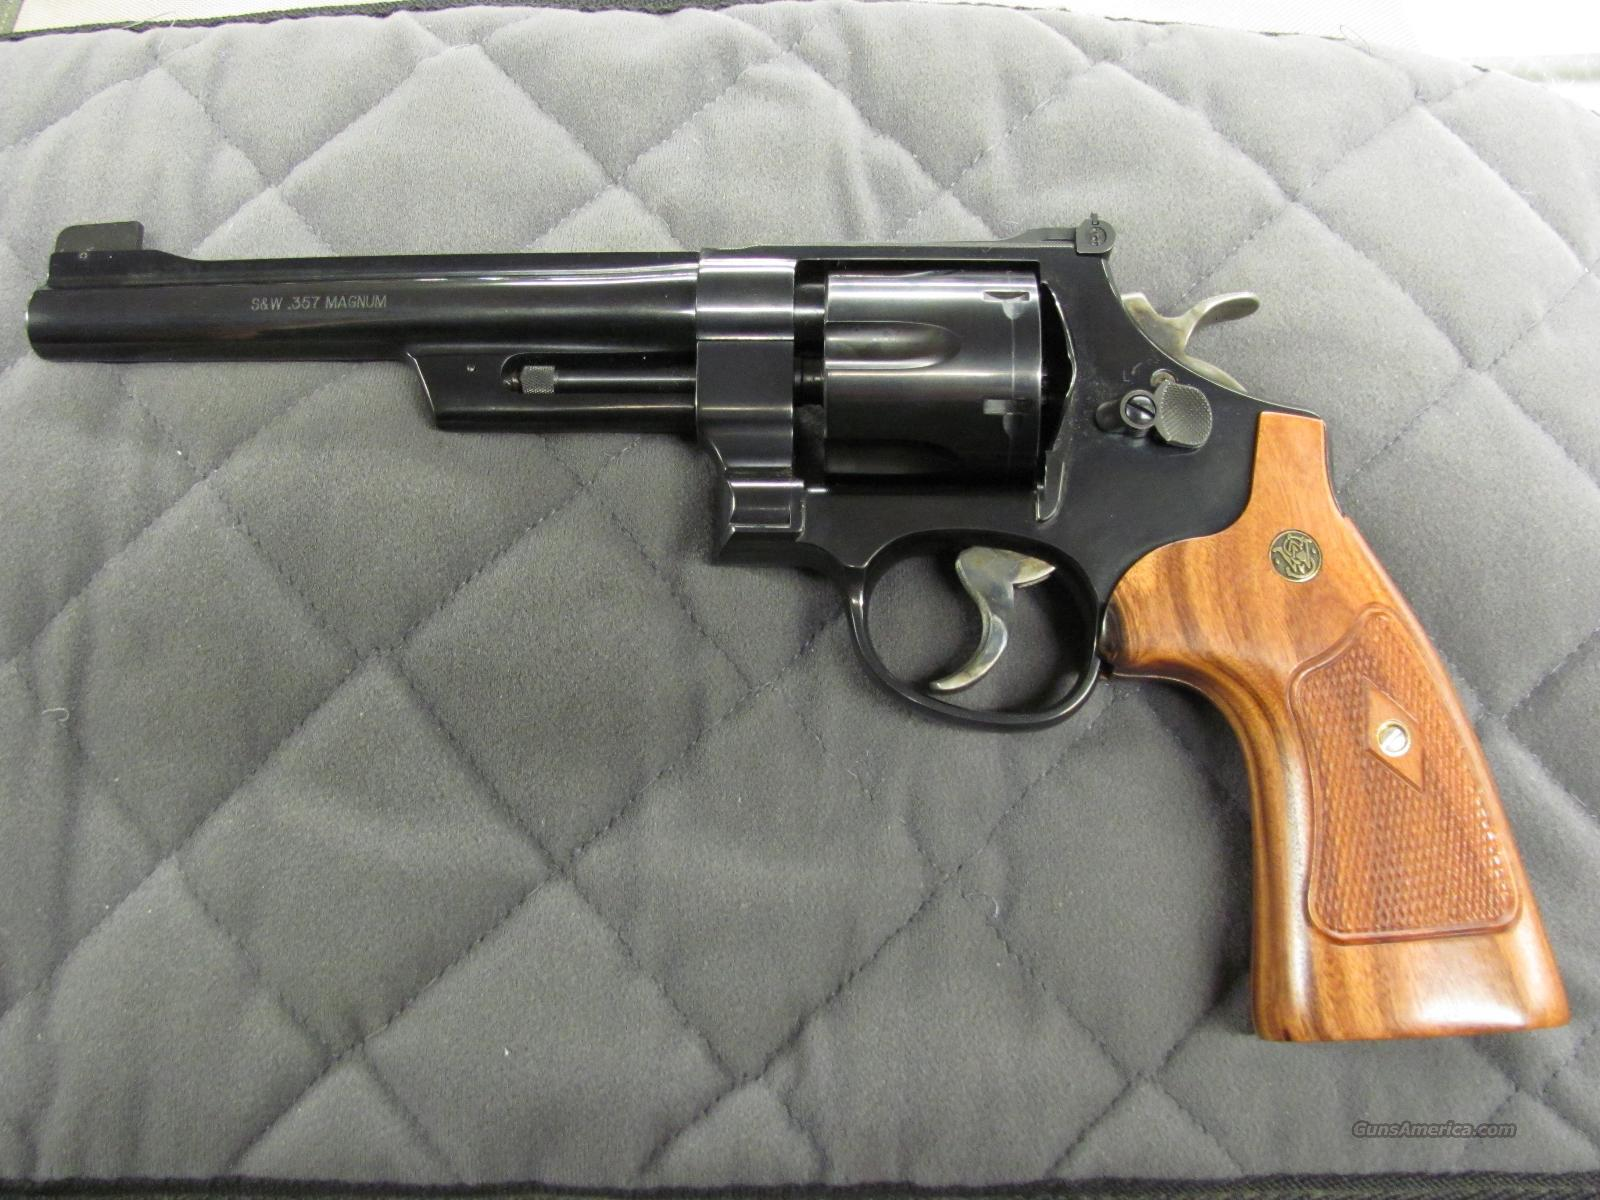 Smith & Wesson Model 27 .357 Mag. NO CC FEES 150341  Guns > Pistols > Smith & Wesson Revolvers > Full Frame Revolver